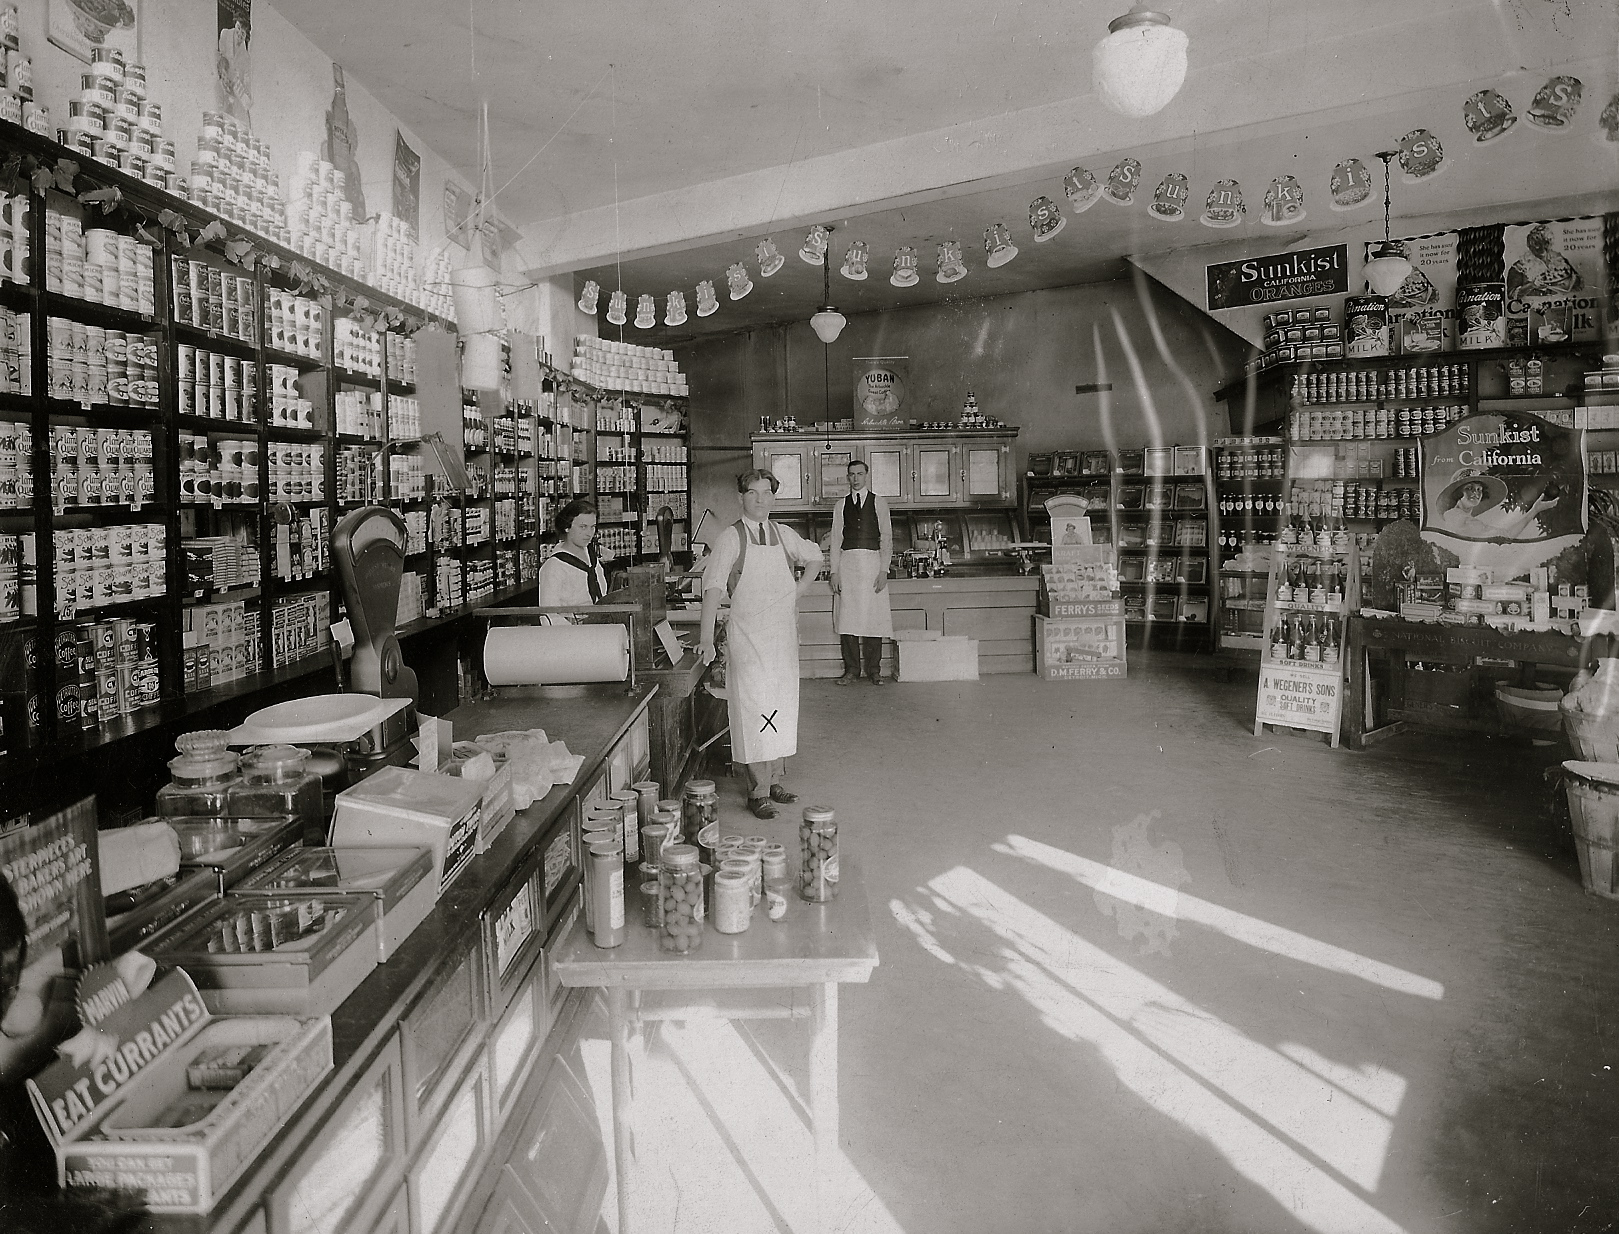 Cadillac Grocer